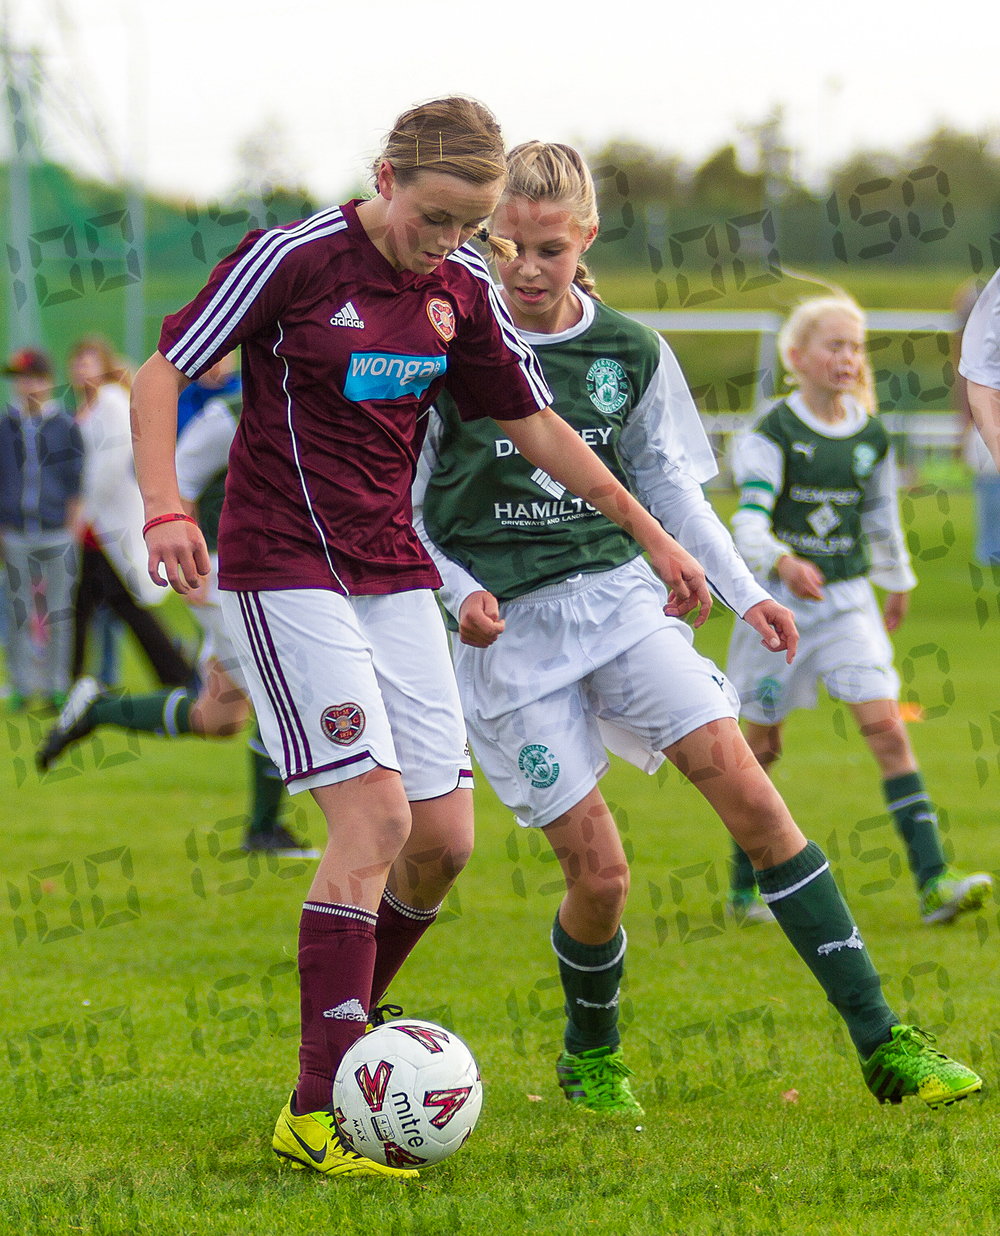 Hibs_v_Hearts_girls_13s-3.jpg